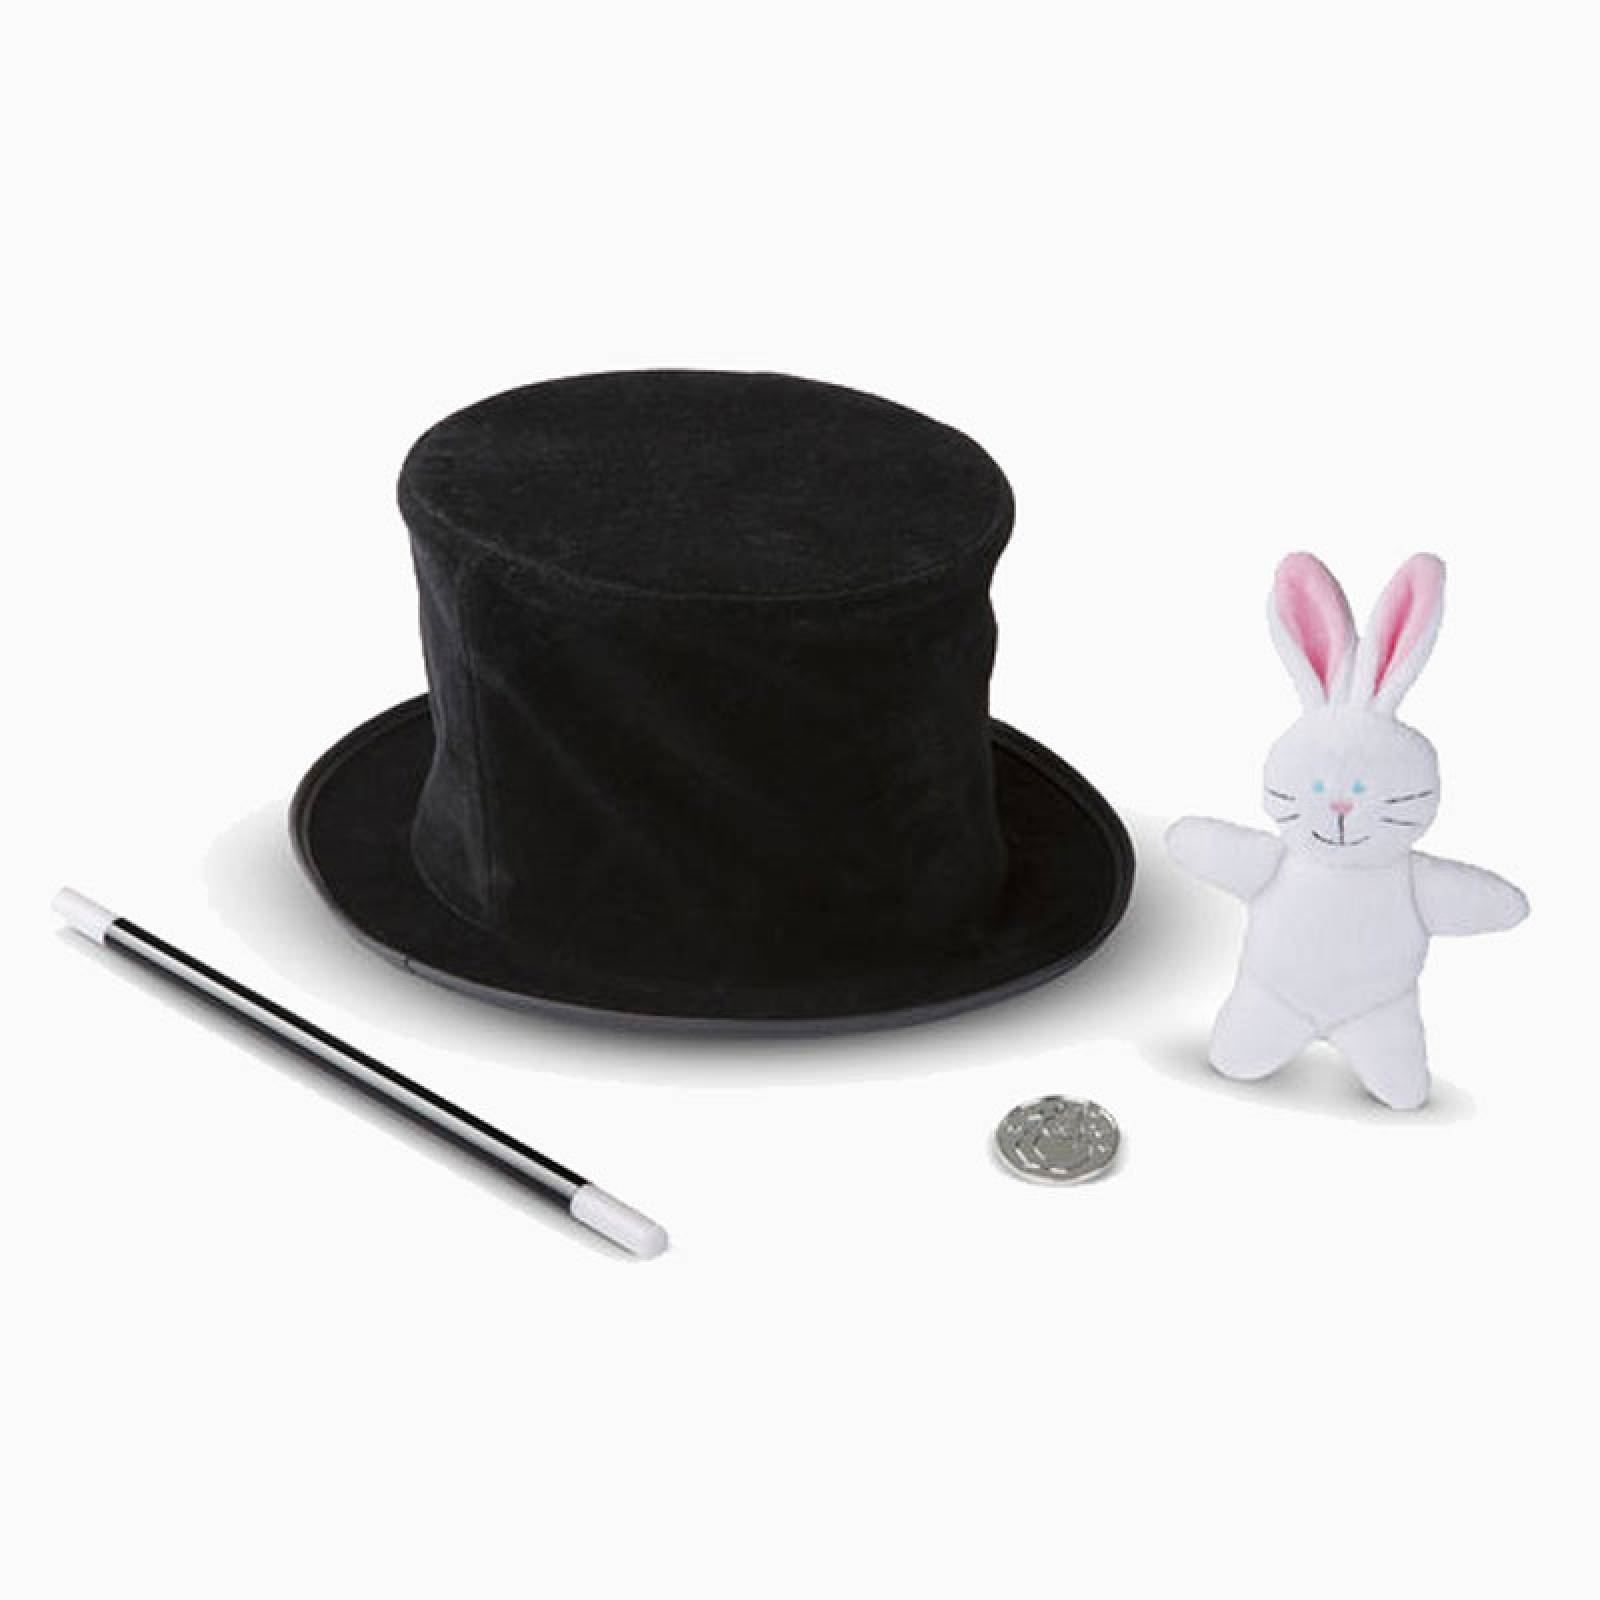 Magic in a Snap - Magician's Pop-Up Magical Hat with Tricks 4+